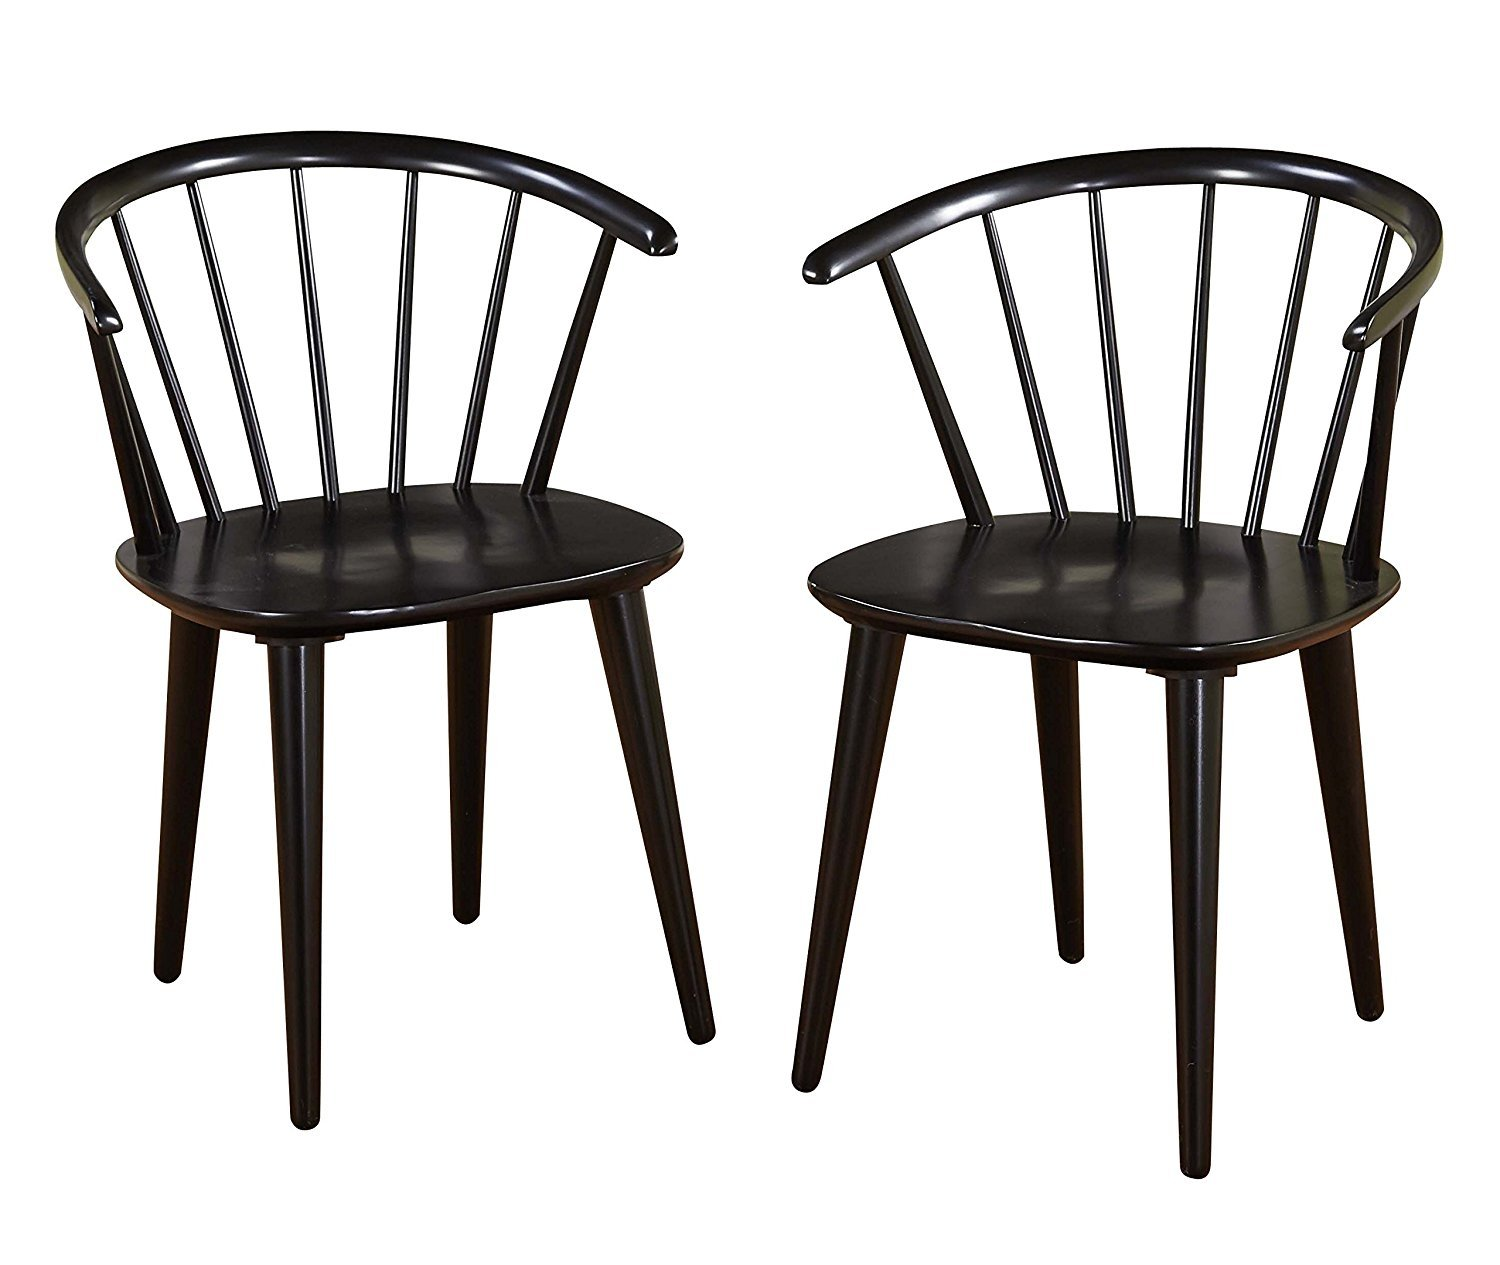 Target Marketing Systems Set Of 2 Florence Dining Chairs With Low Windsor  Spindle Back, Set Of 2, Black   Walmart.com